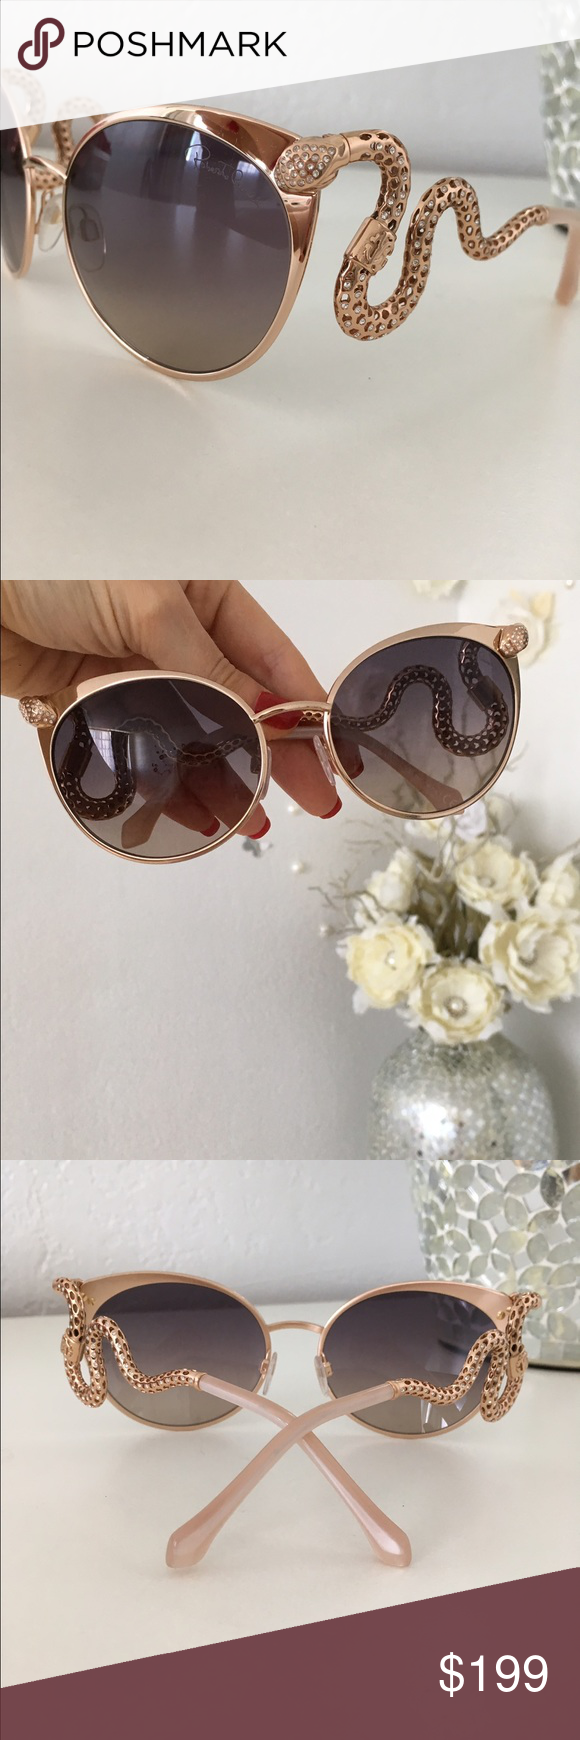 Roberto Cavalli Snake sunglasses Authentic RC Menkalinan snake and crystal sunglasses. New without case. Gorgeous. No🚫trades Roberto Cavalli Accessories Sunglasses